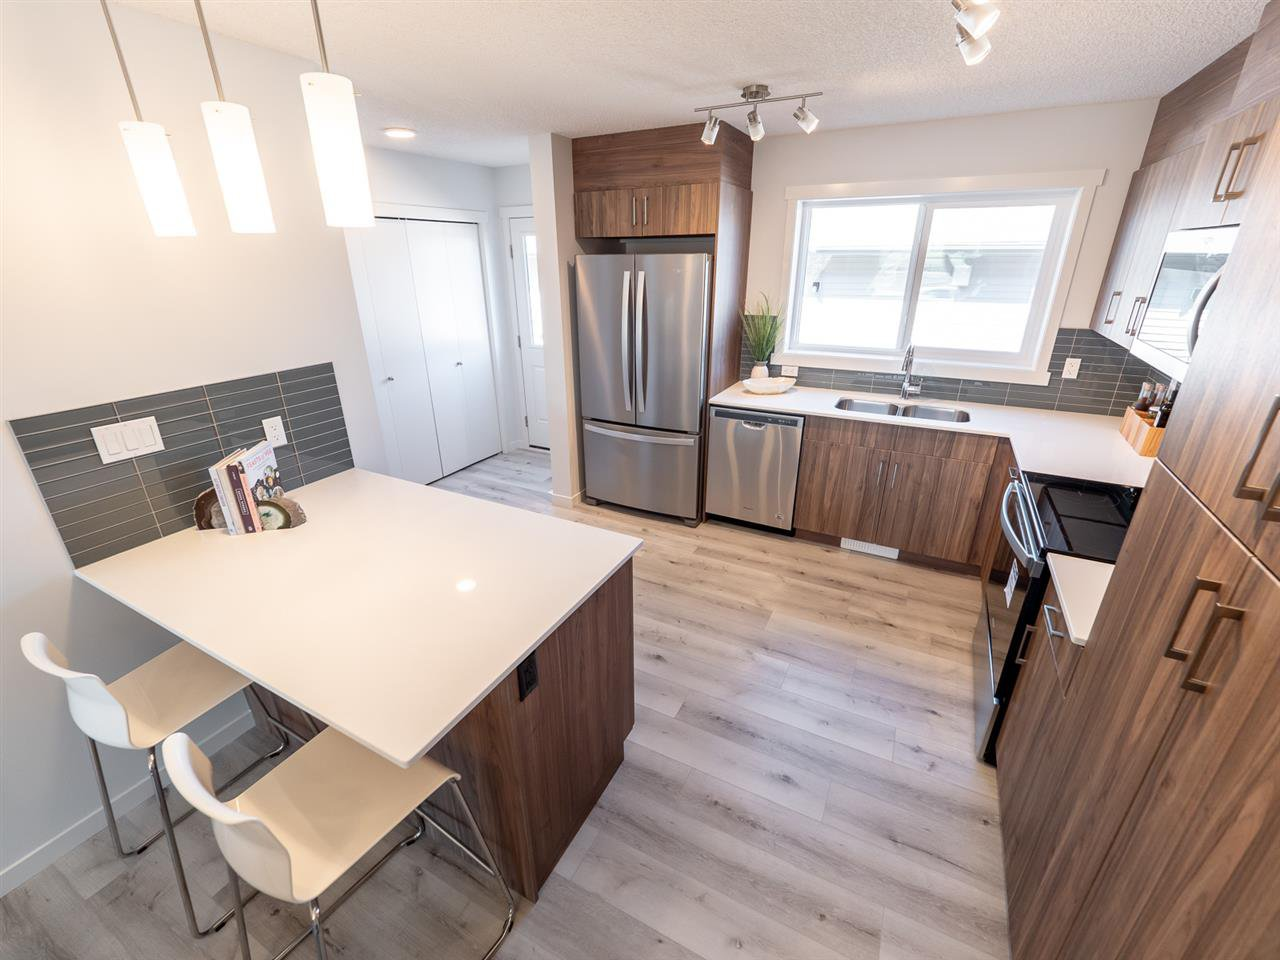 Main Photo: 2616 201 Street in Edmonton: Zone 57 Attached Home for sale : MLS®# E4204703